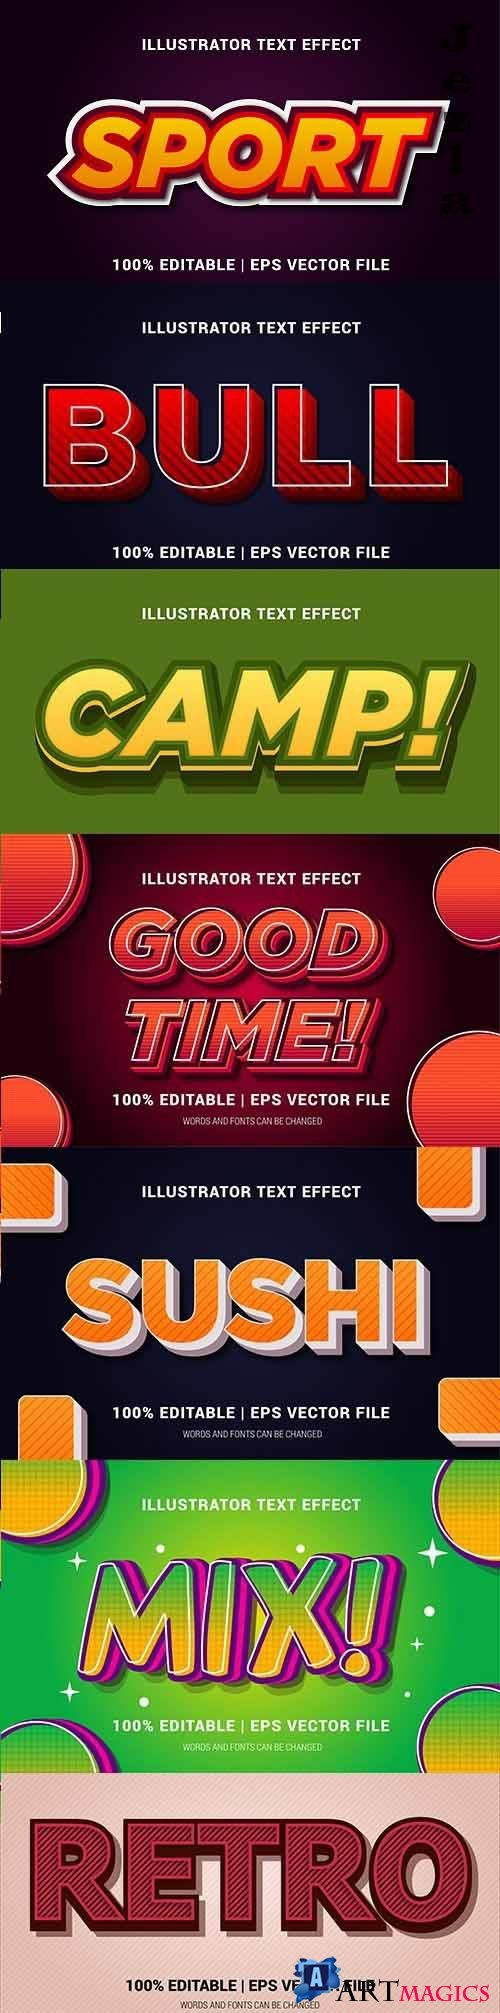 Editable font effect text collection illustration design 129